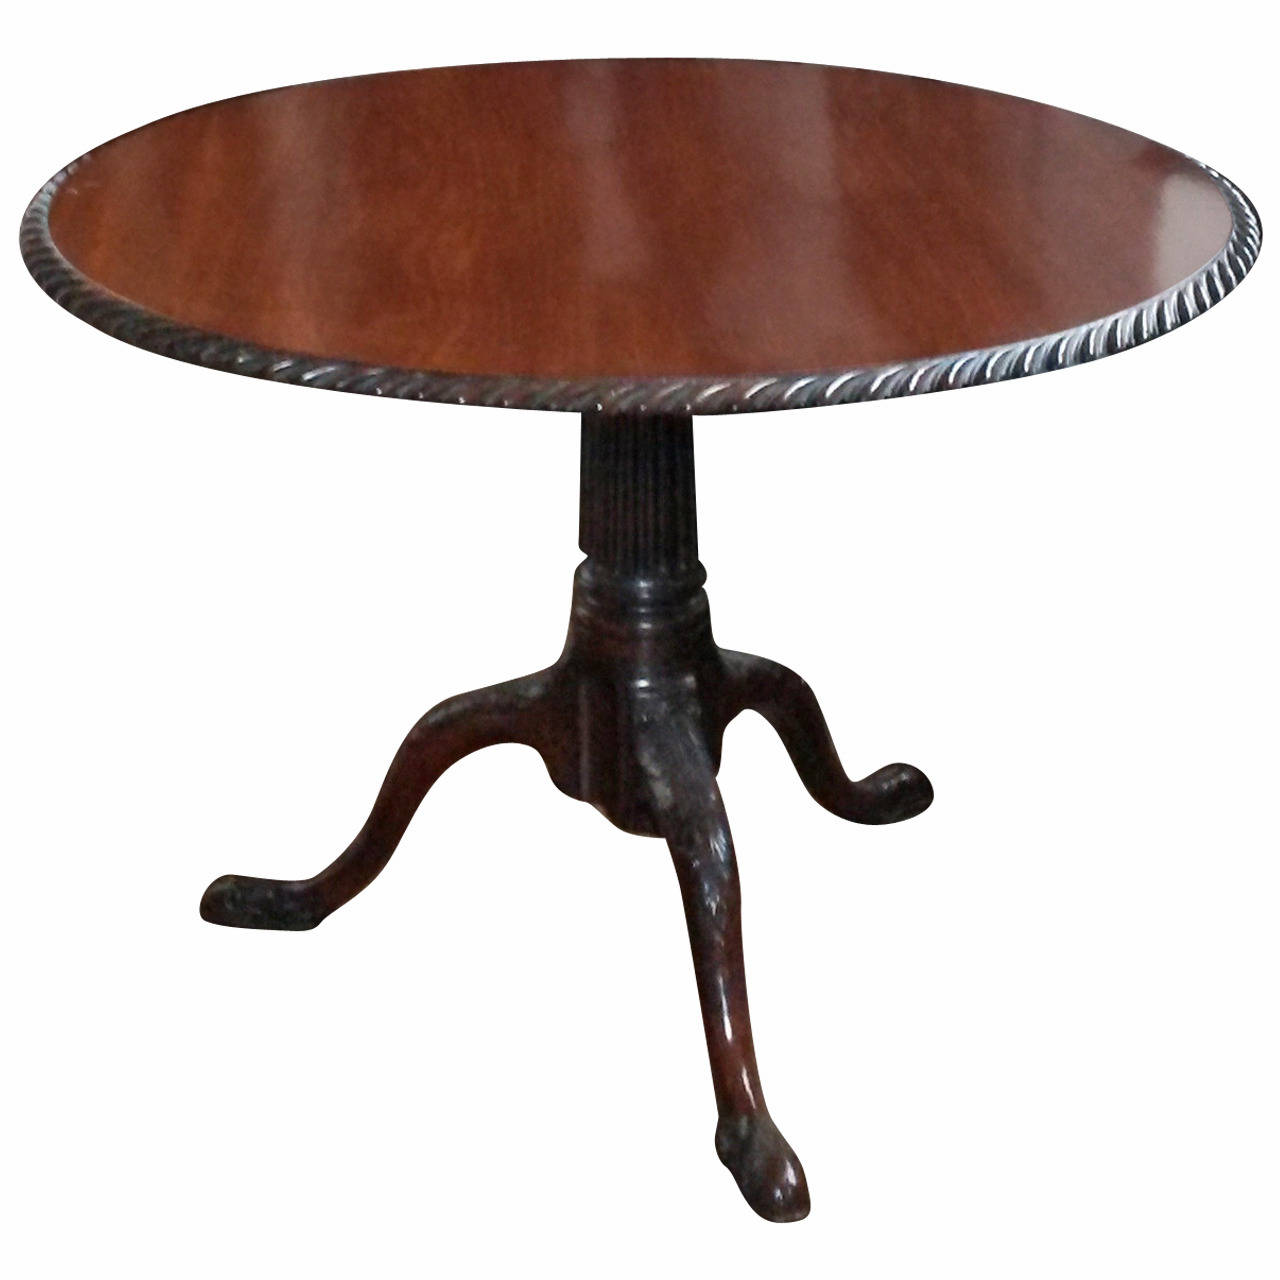 George II Mahogany Tilt-Top Table